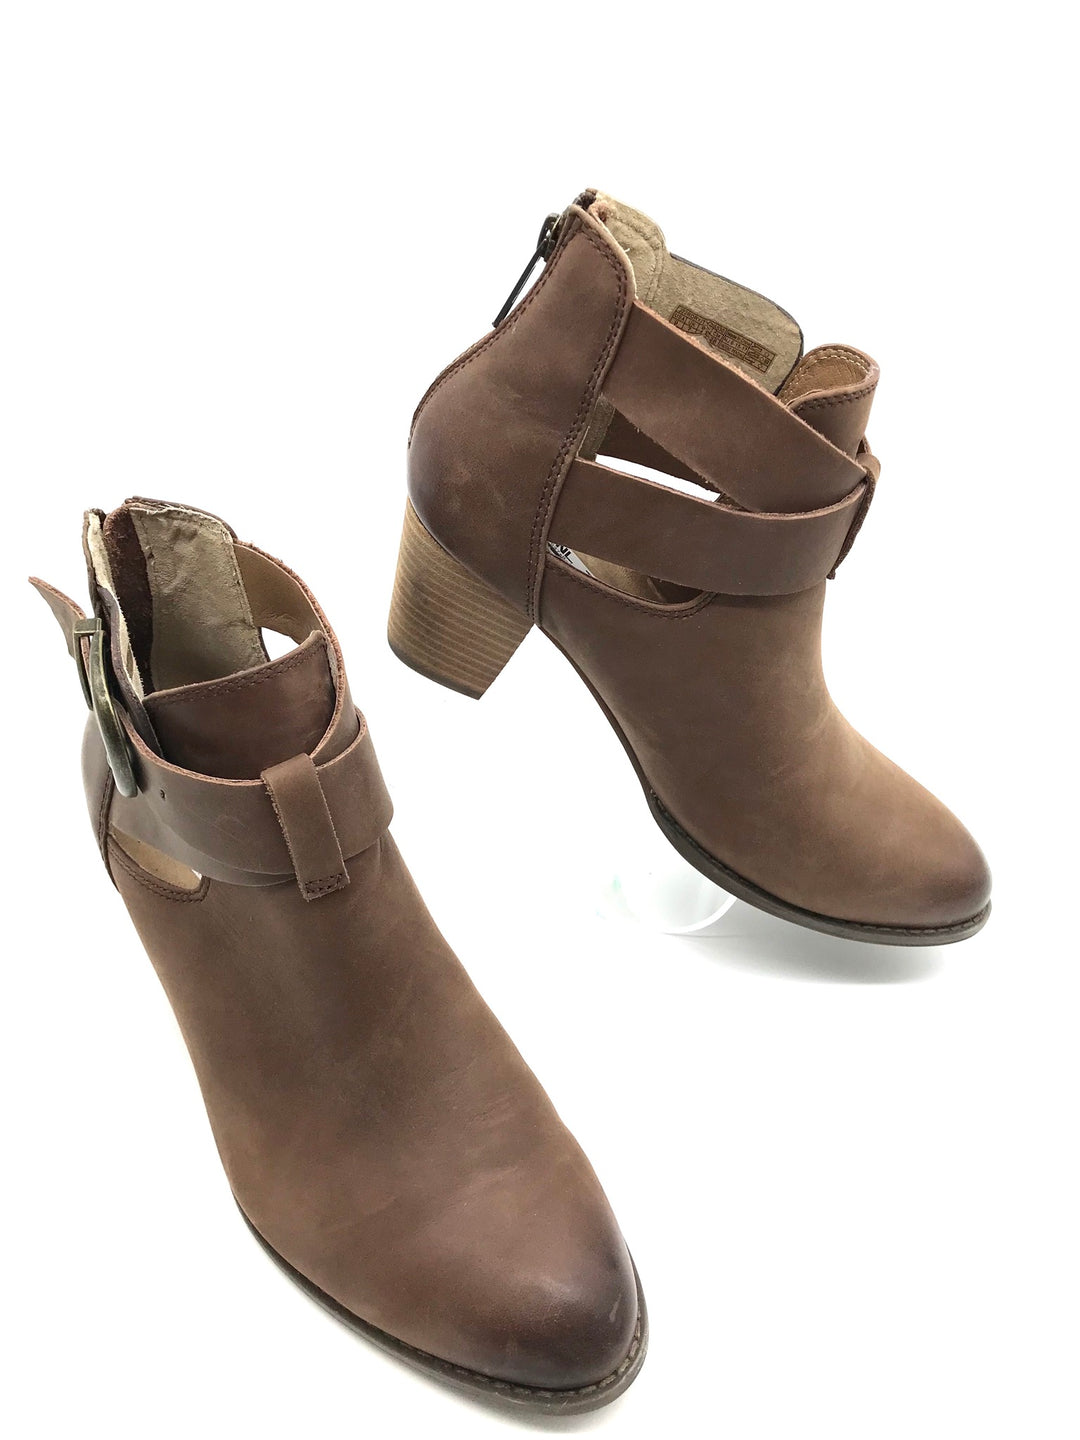 Primary Photo - BRAND: VINCE <BR>STYLE: BOOTS ANKLE <BR>COLOR: TAN <BR>SIZE: 9 <BR>SKU: 262-262101-537<BR>AS IS